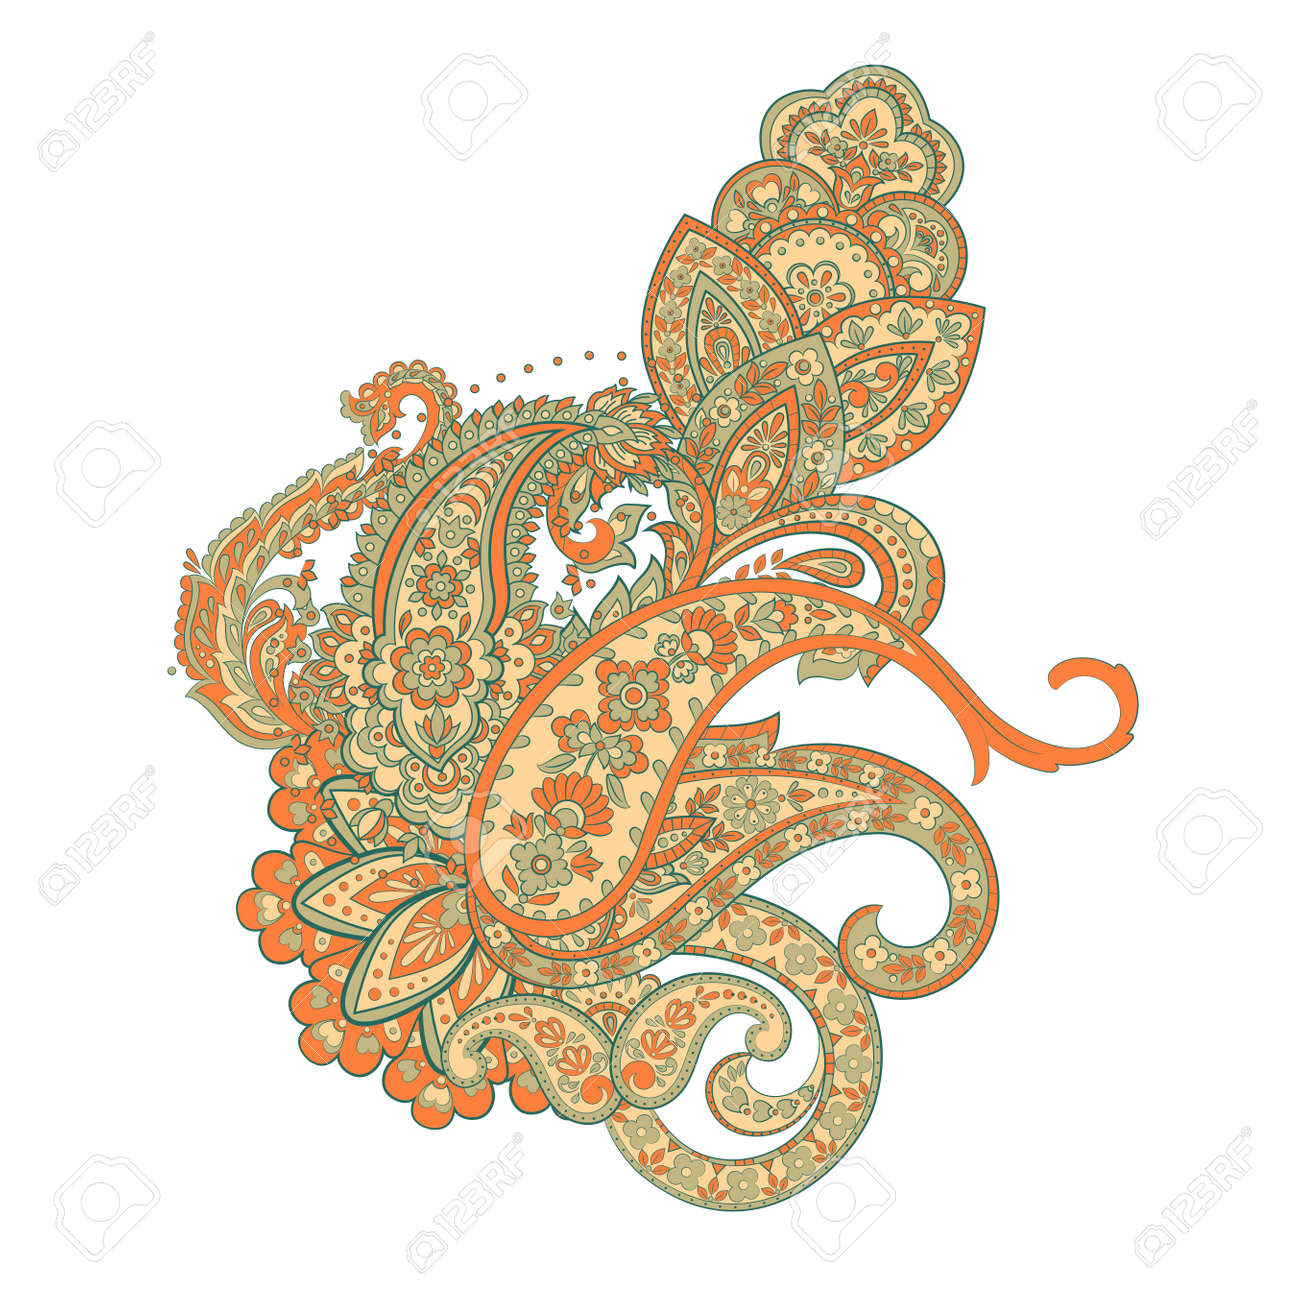 Indian, Persian Paisley isolated ornament - 125597293